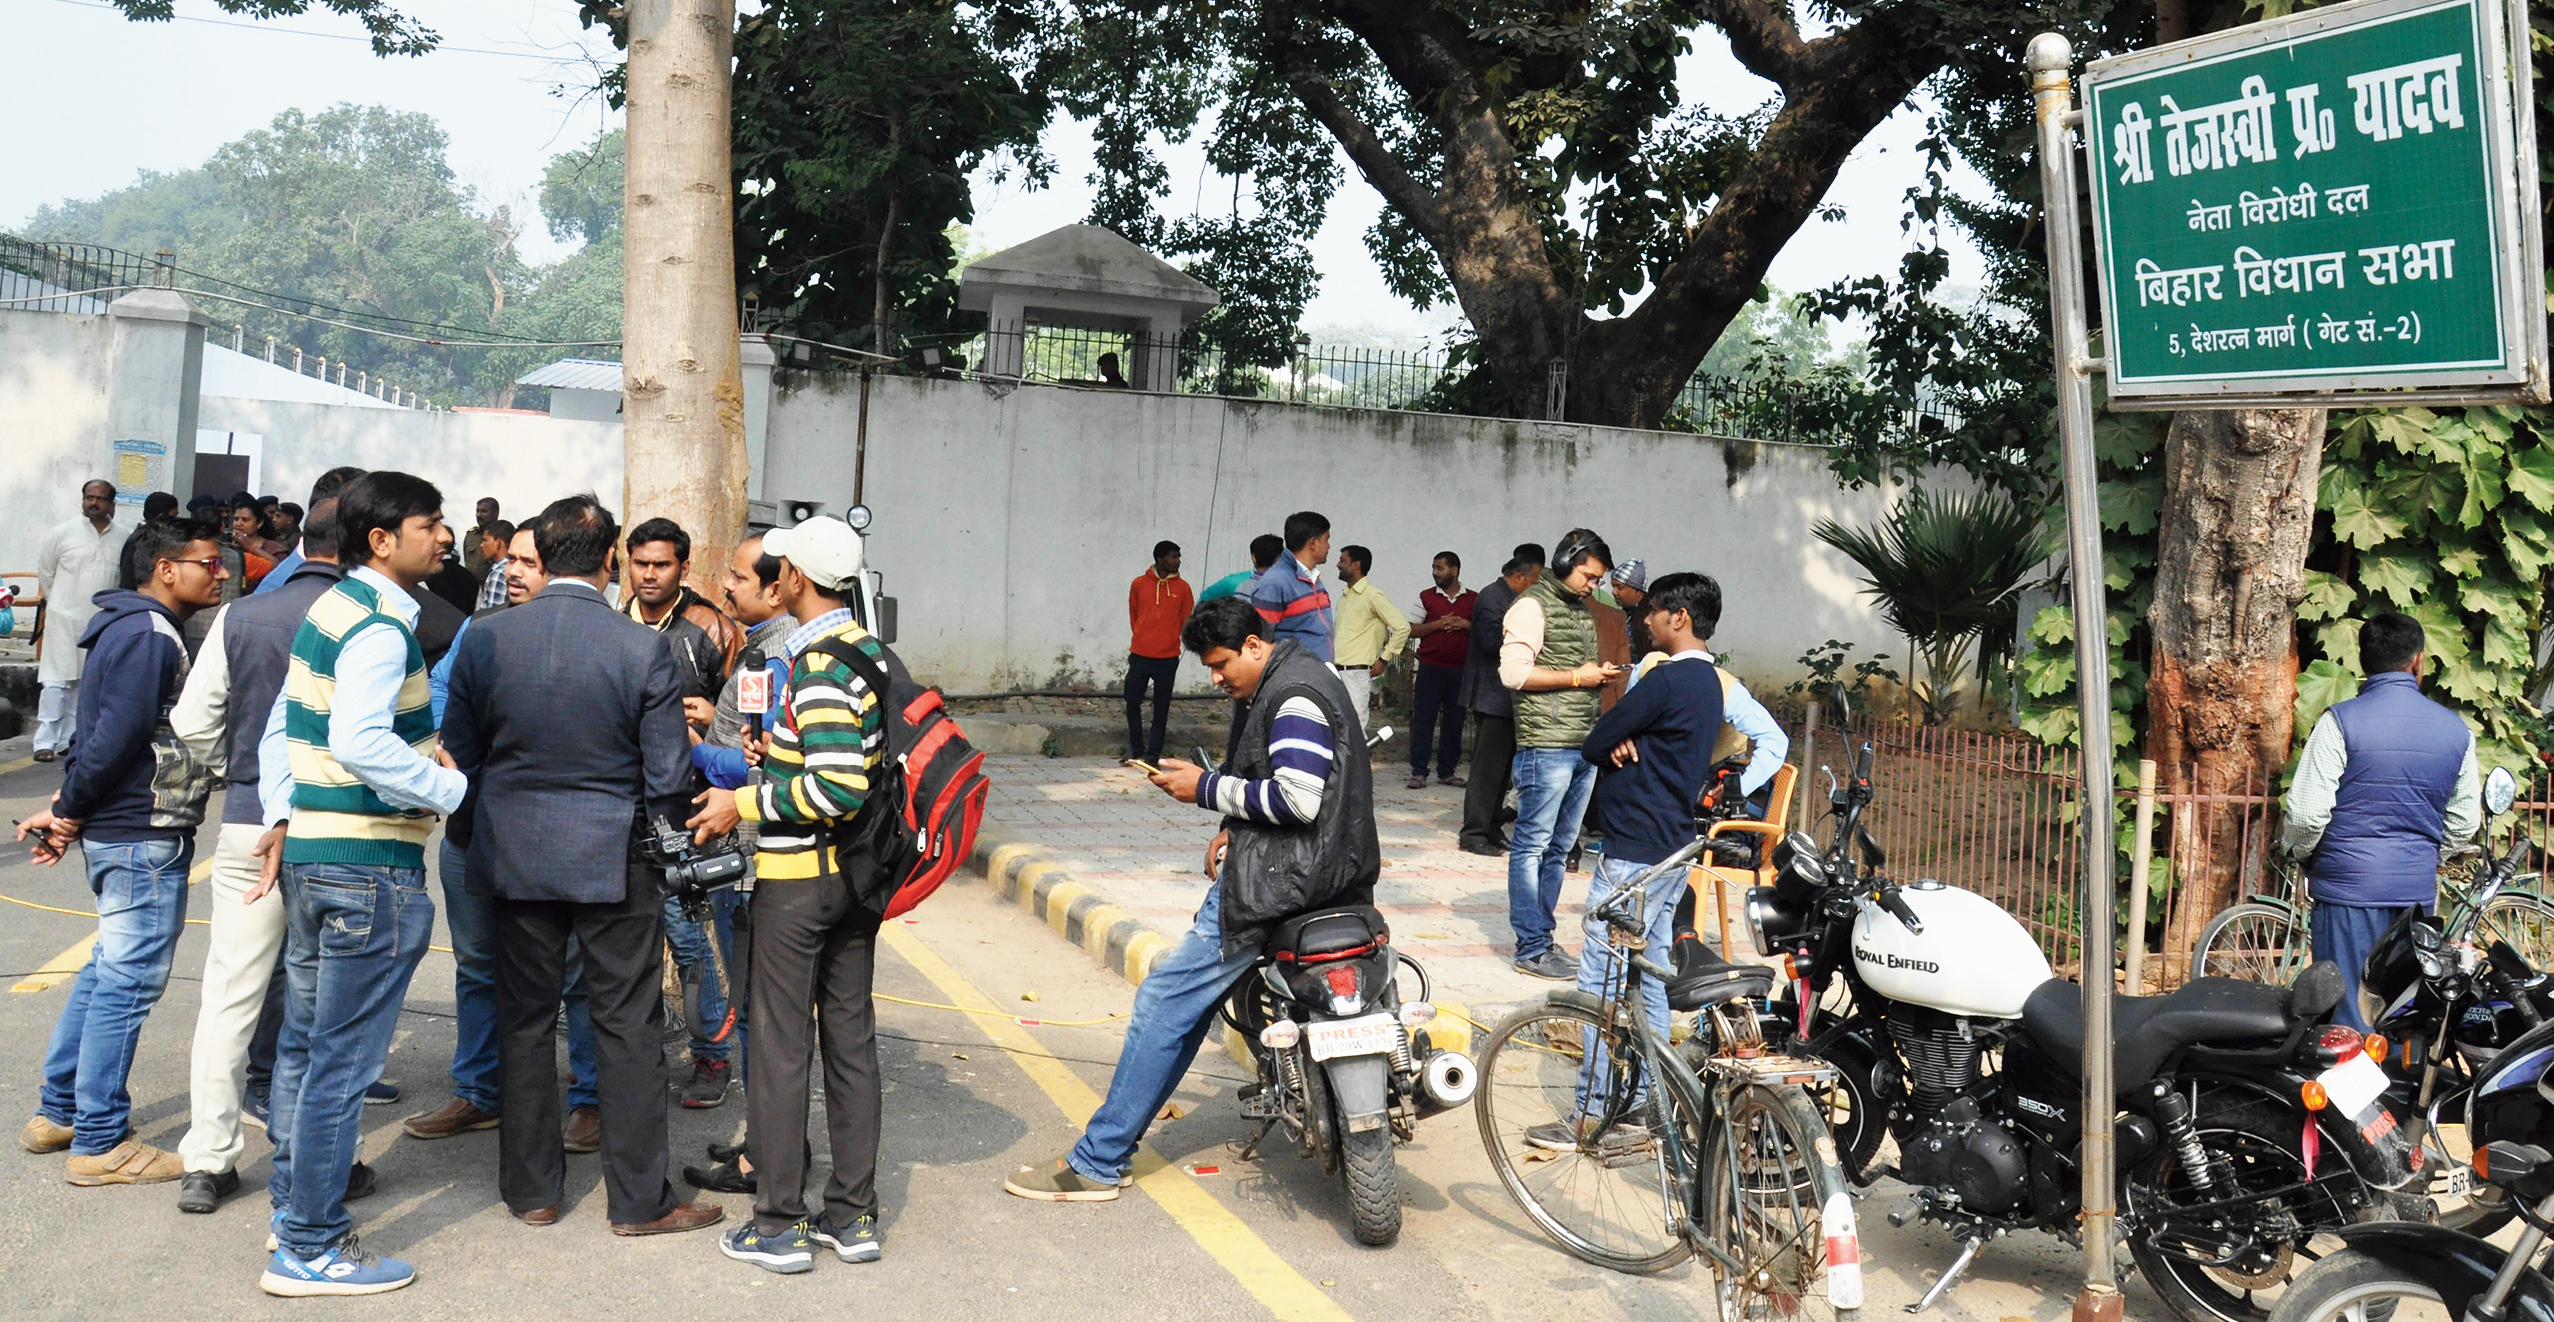 A crowd of district administration officials, RJD supporters and policemen outside the government bungalow of RJD leader Tejashwi Prasad Yadav on Wednesday.